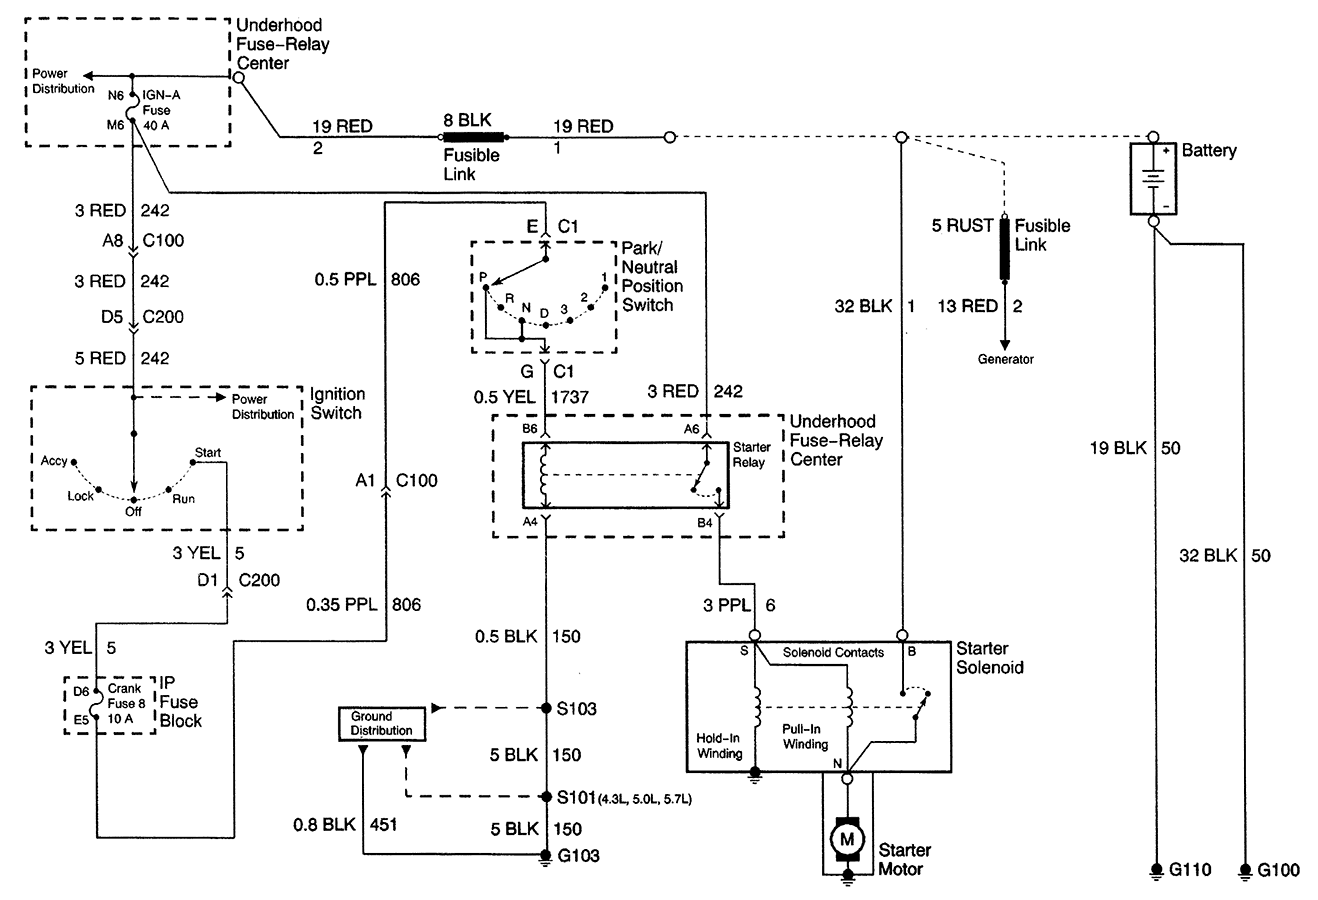 2000 Gmc Sierra Headlight Wiring Diagram : Headlight wiring diagram for gmc sierra